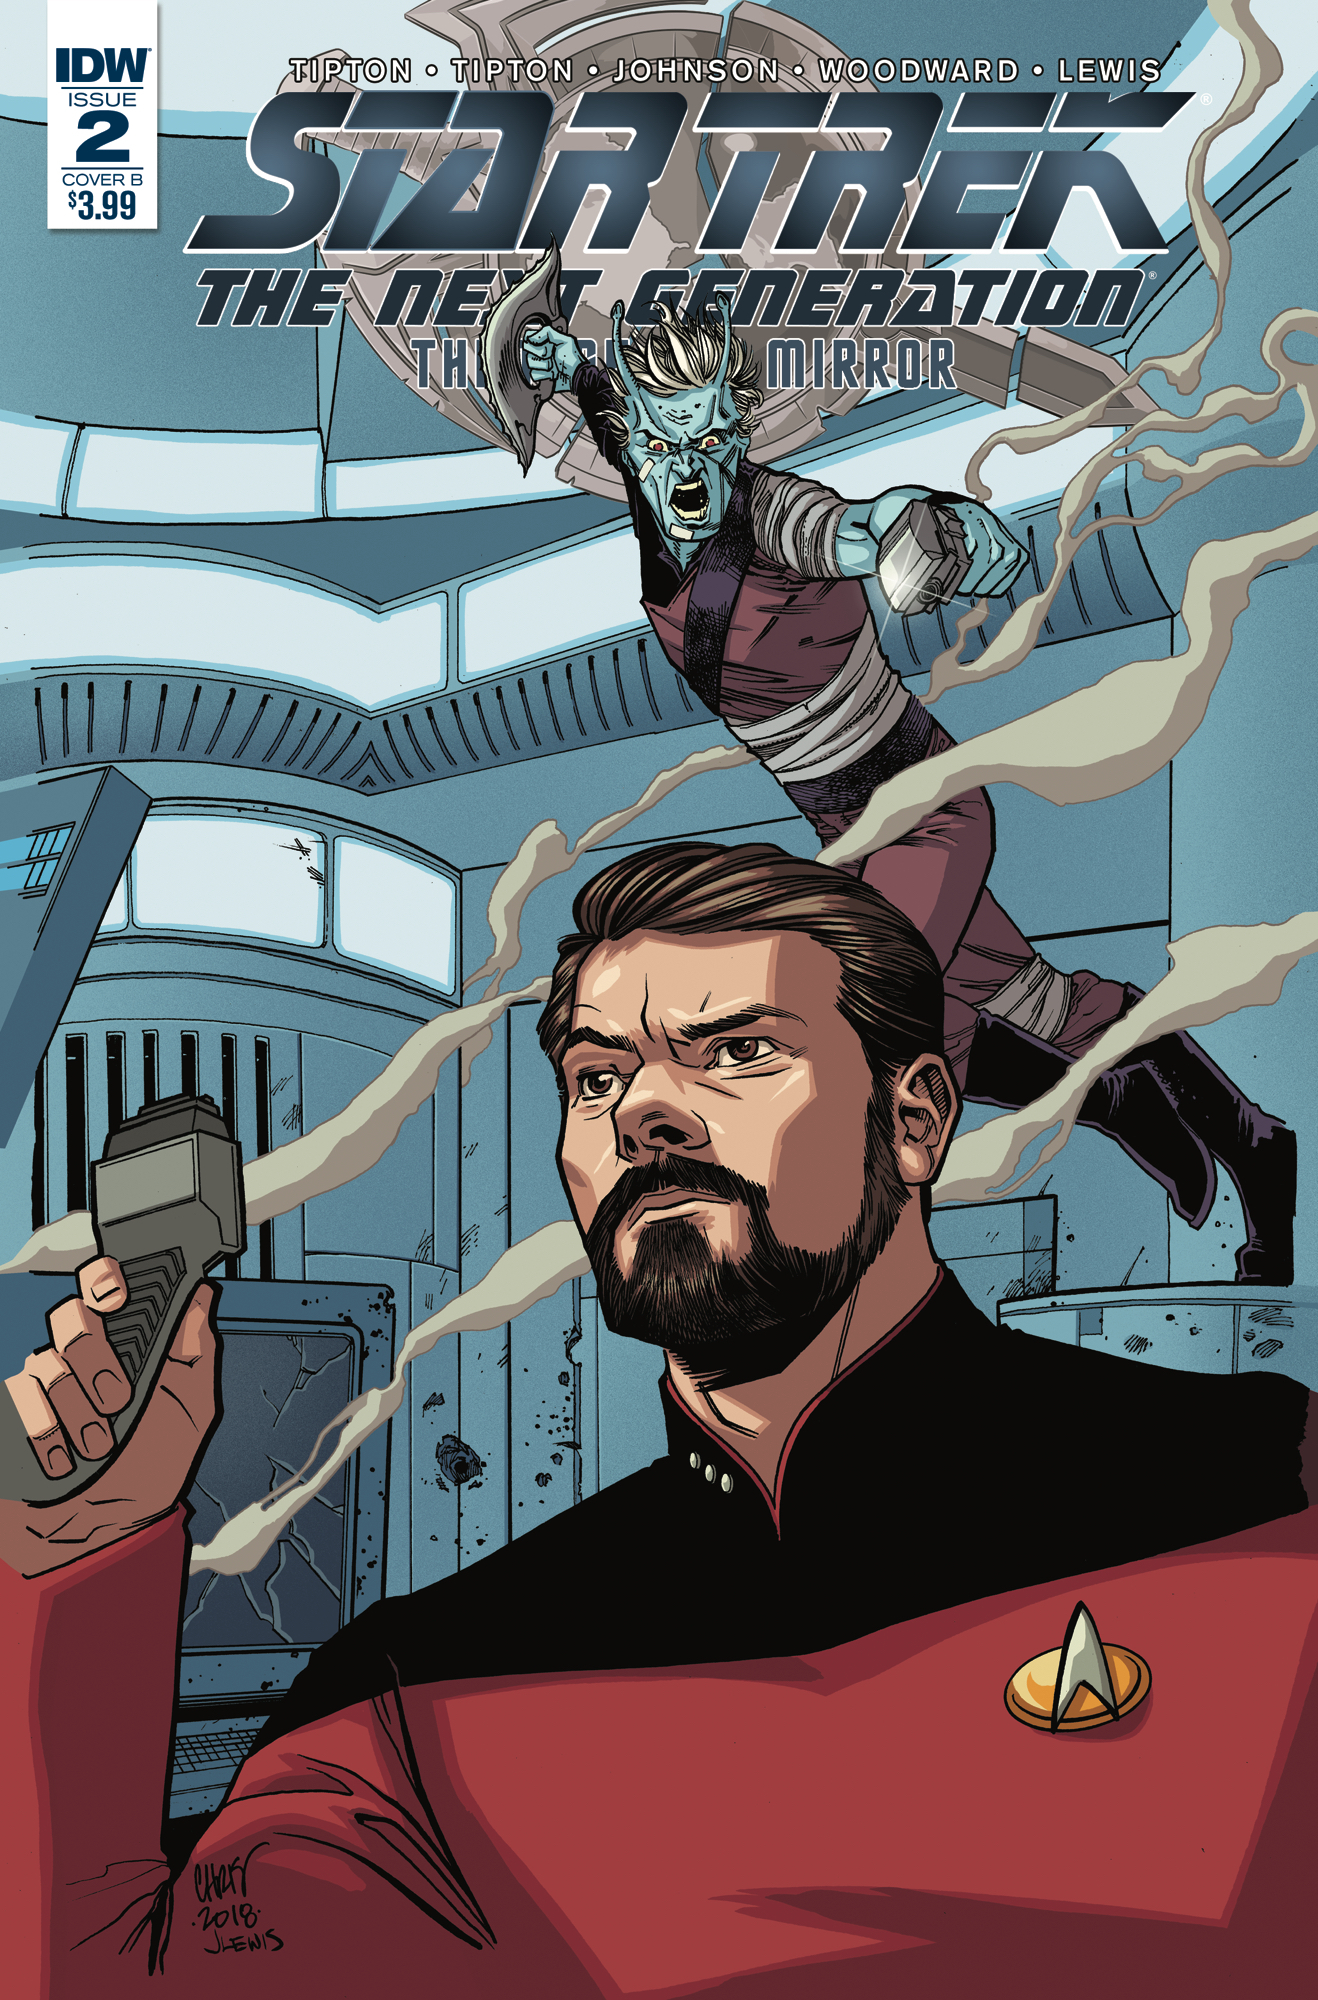 STAR TREK TNG THROUGH THE MIRROR #2 CVR B JOHNSON